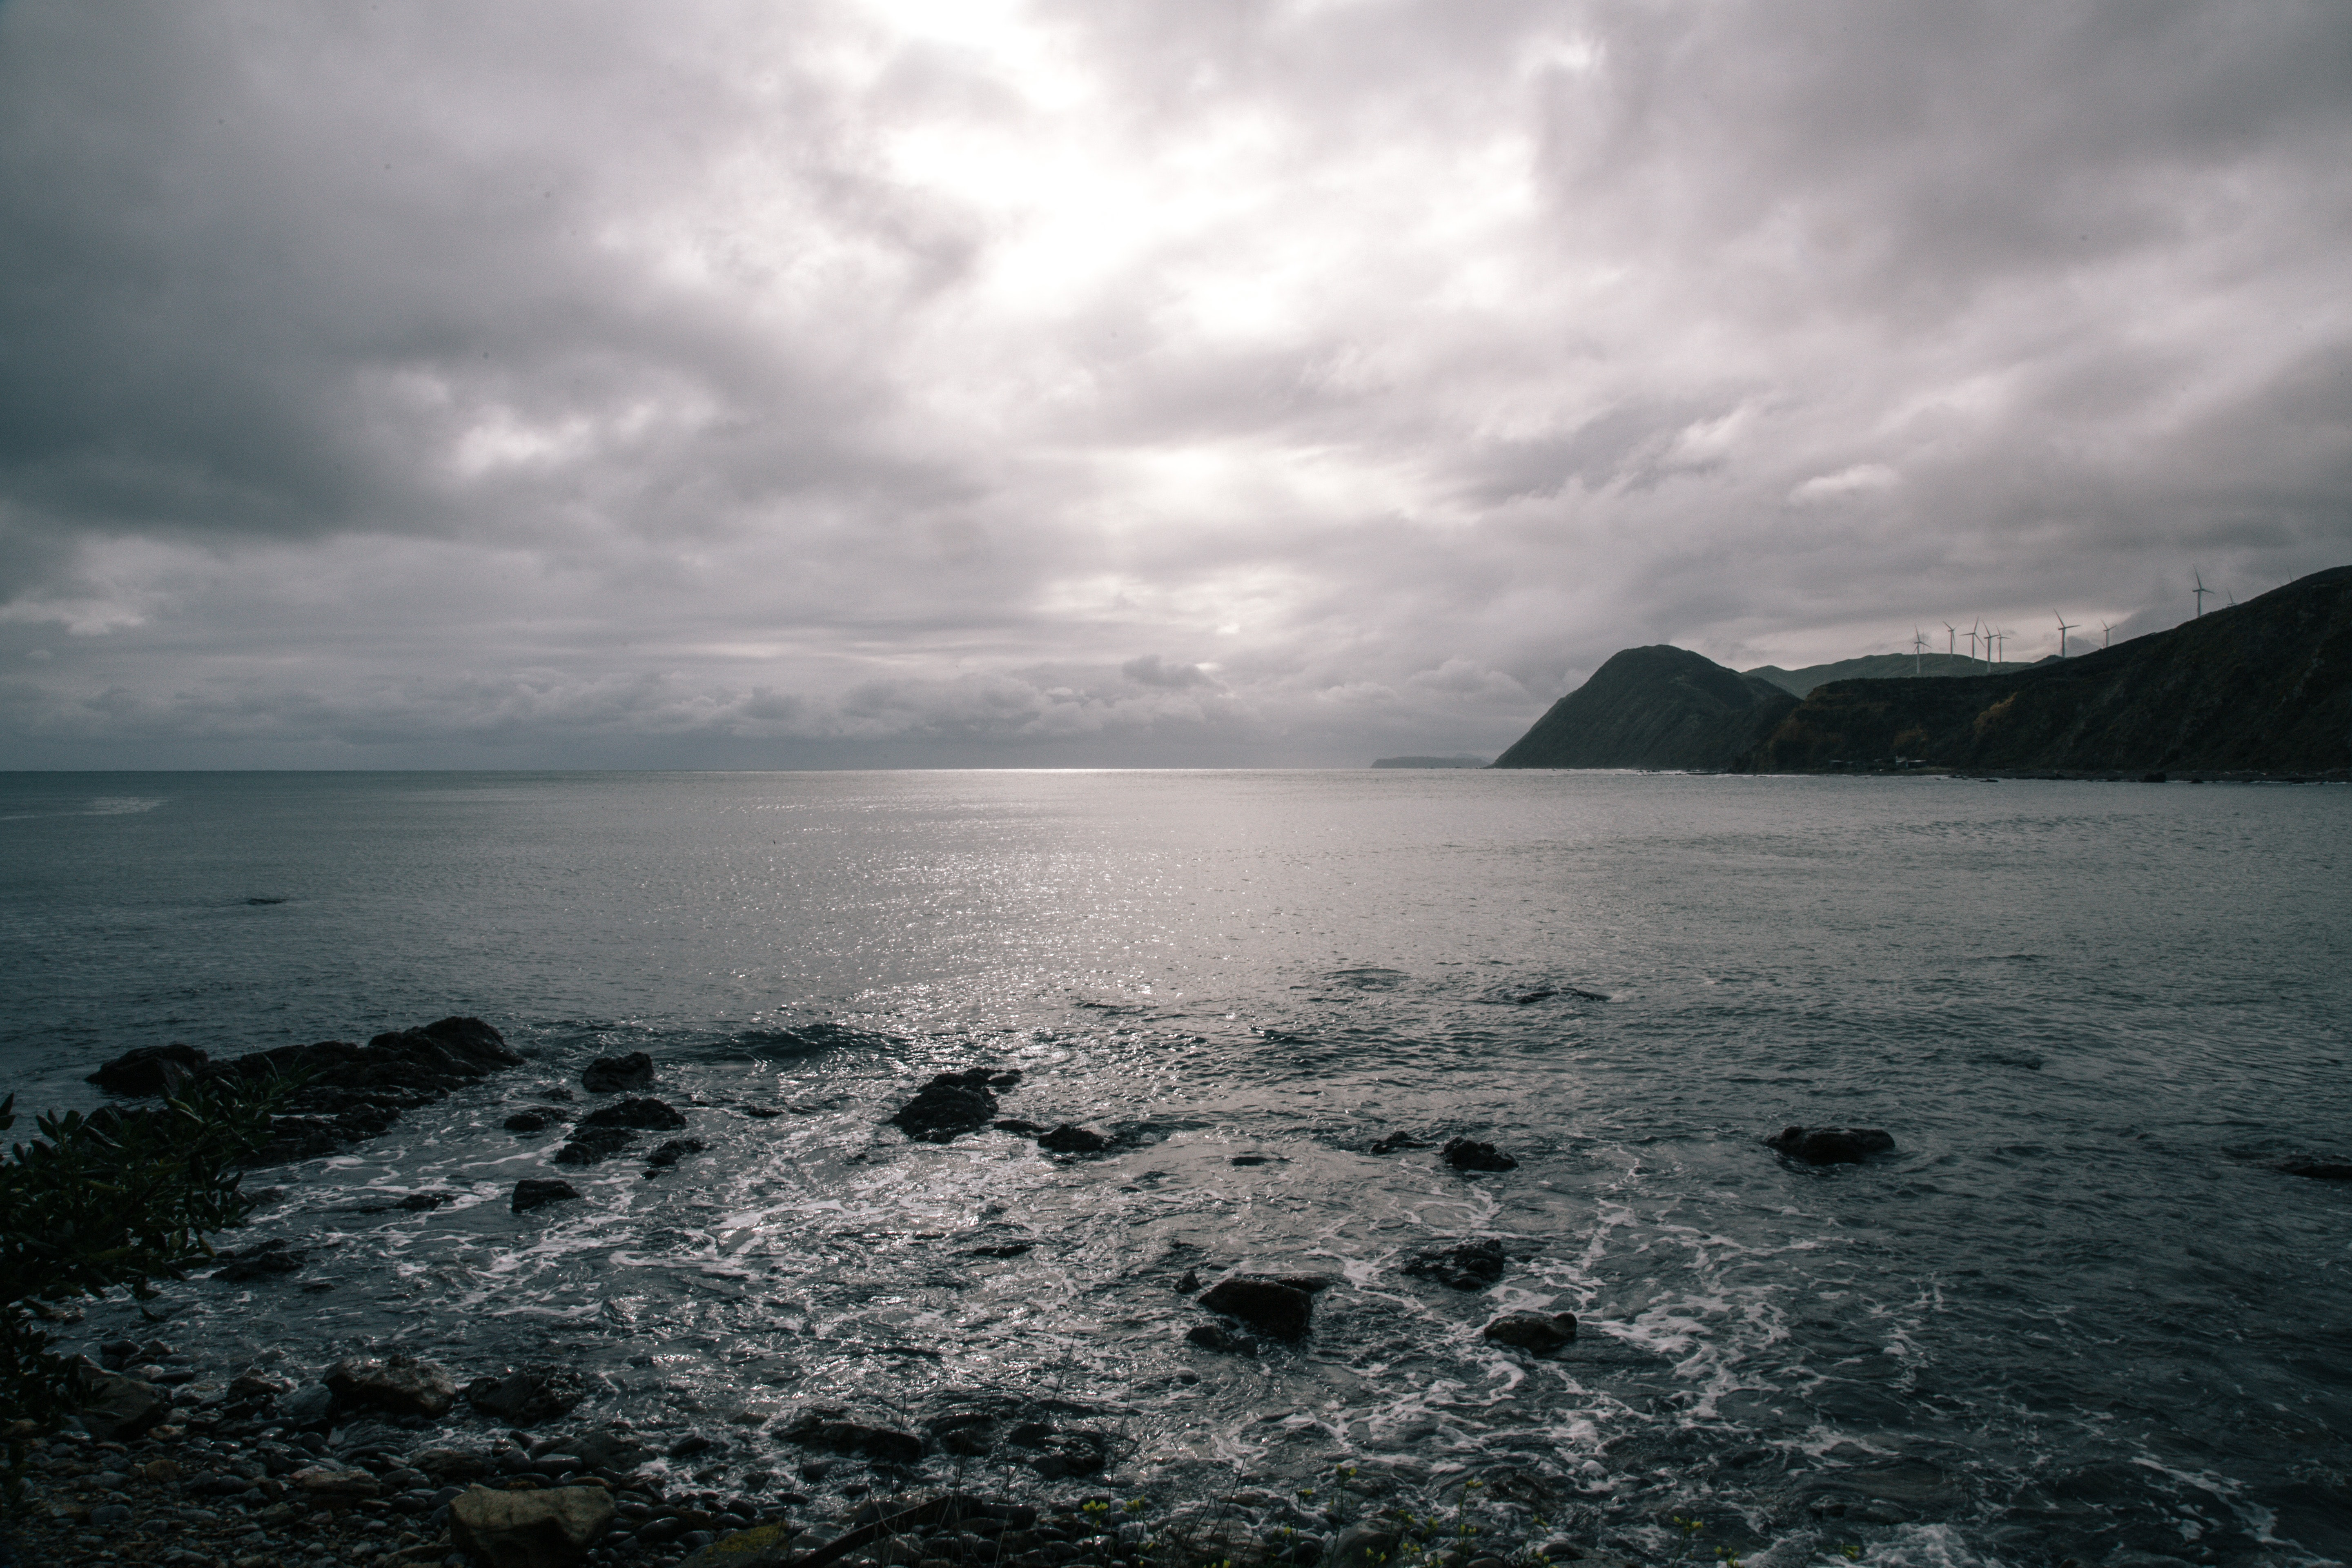 View of the ocean horizon with windmills on the coastline on a cloudy day at Makara Beach